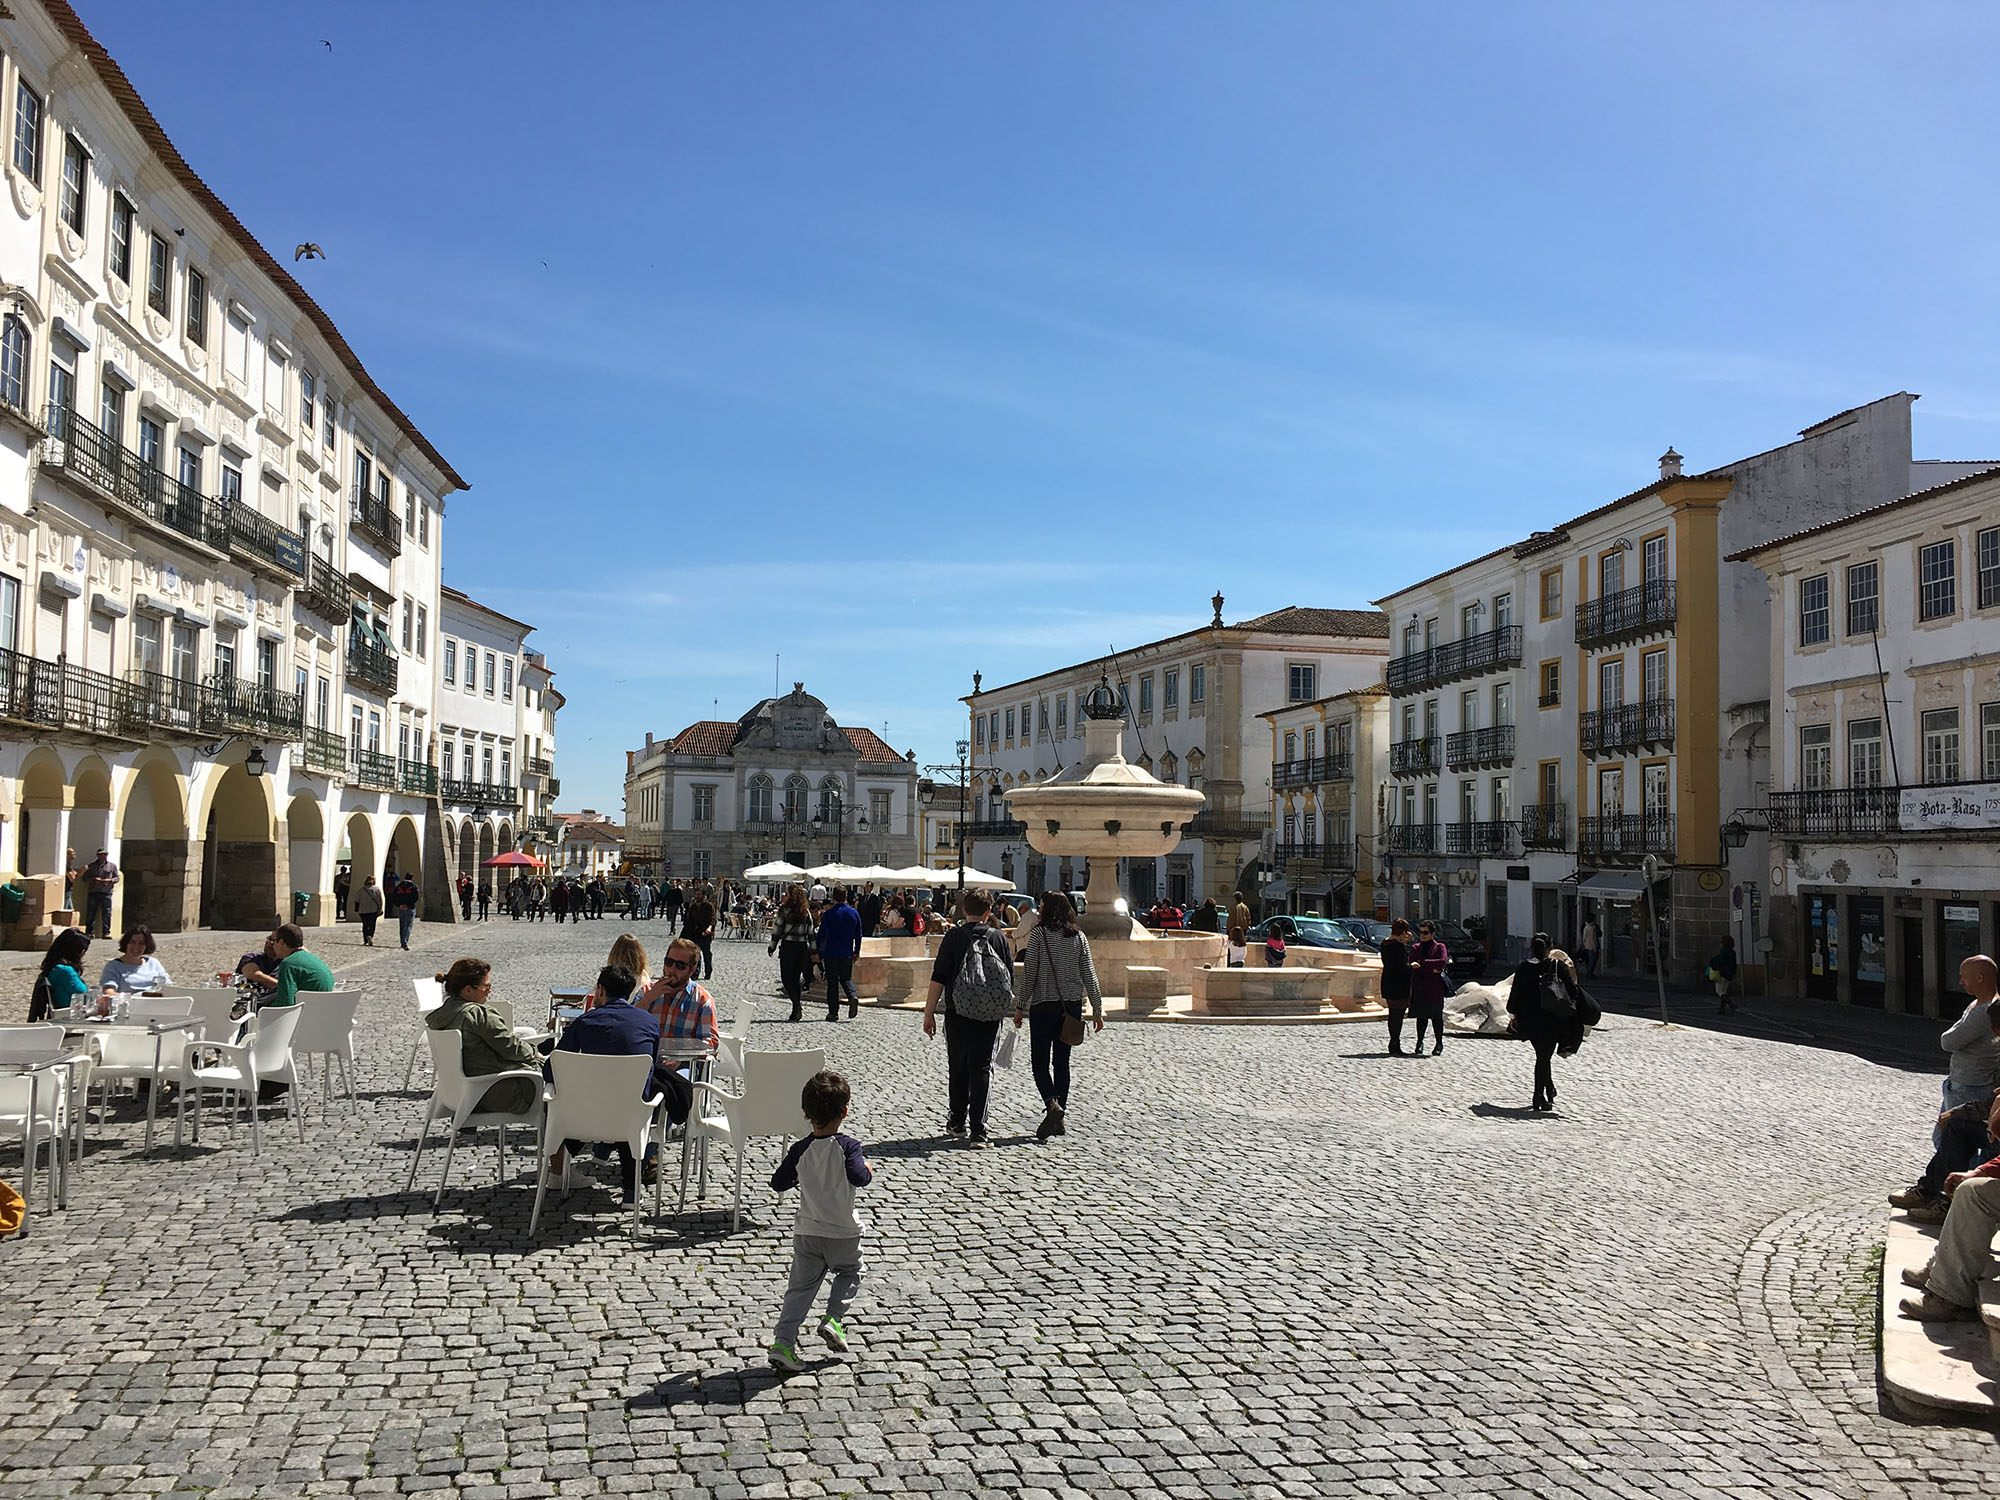 The Praca de Giraldo is Evora's main square and the home of many shops and restaurants. (Kevin Chong)